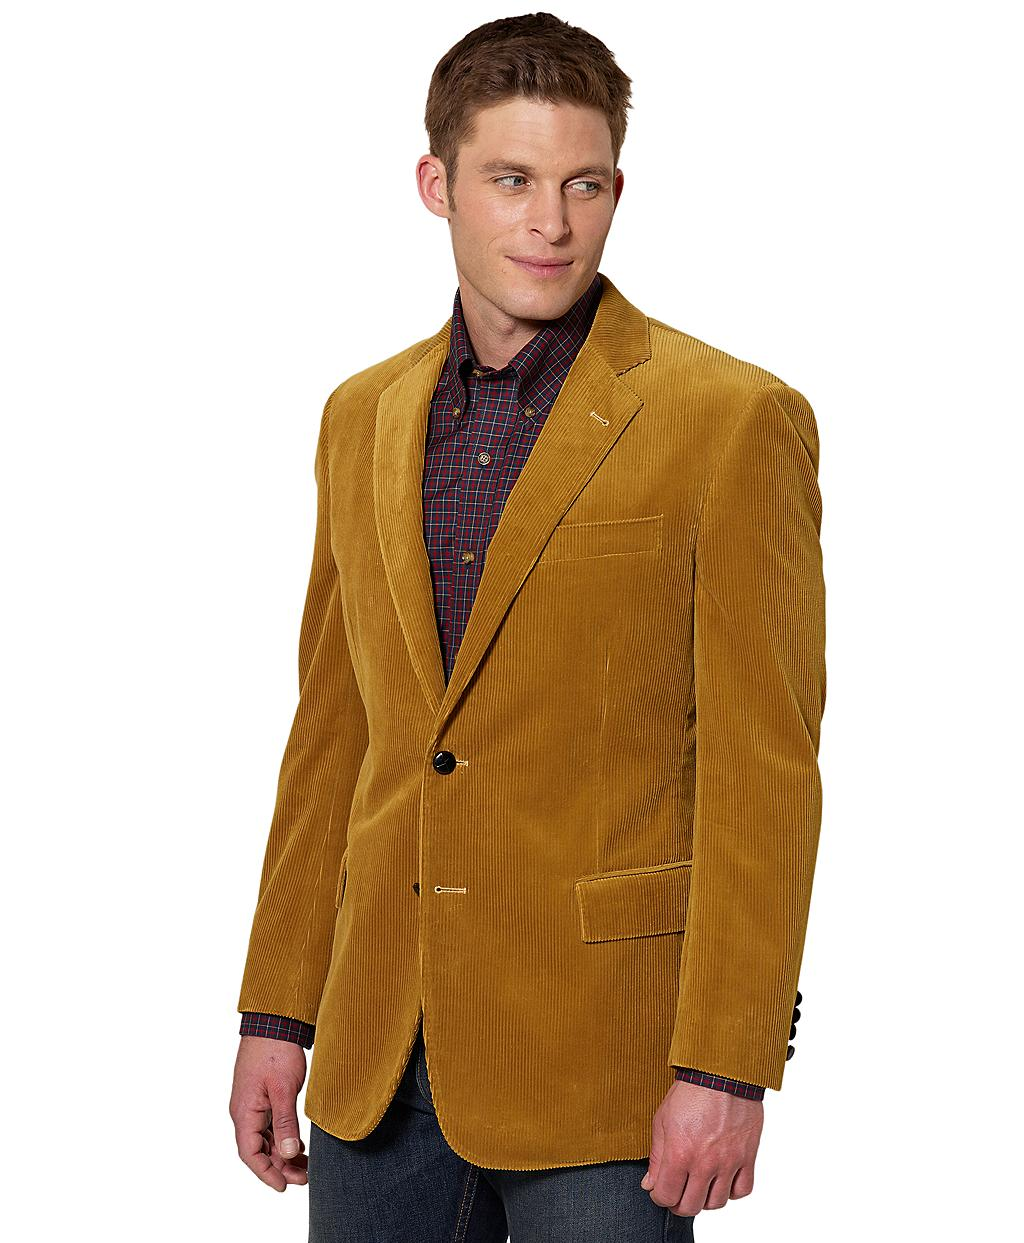 Shop the Latest Collection of Yellow Blazers & Sports Coats for Men Online at tubidyindir.ga FREE SHIPPING AVAILABLE! Macy's Presents: The Edit - A curated mix of fashion and inspiration Check It Out Free Shipping with $49 purchase + .